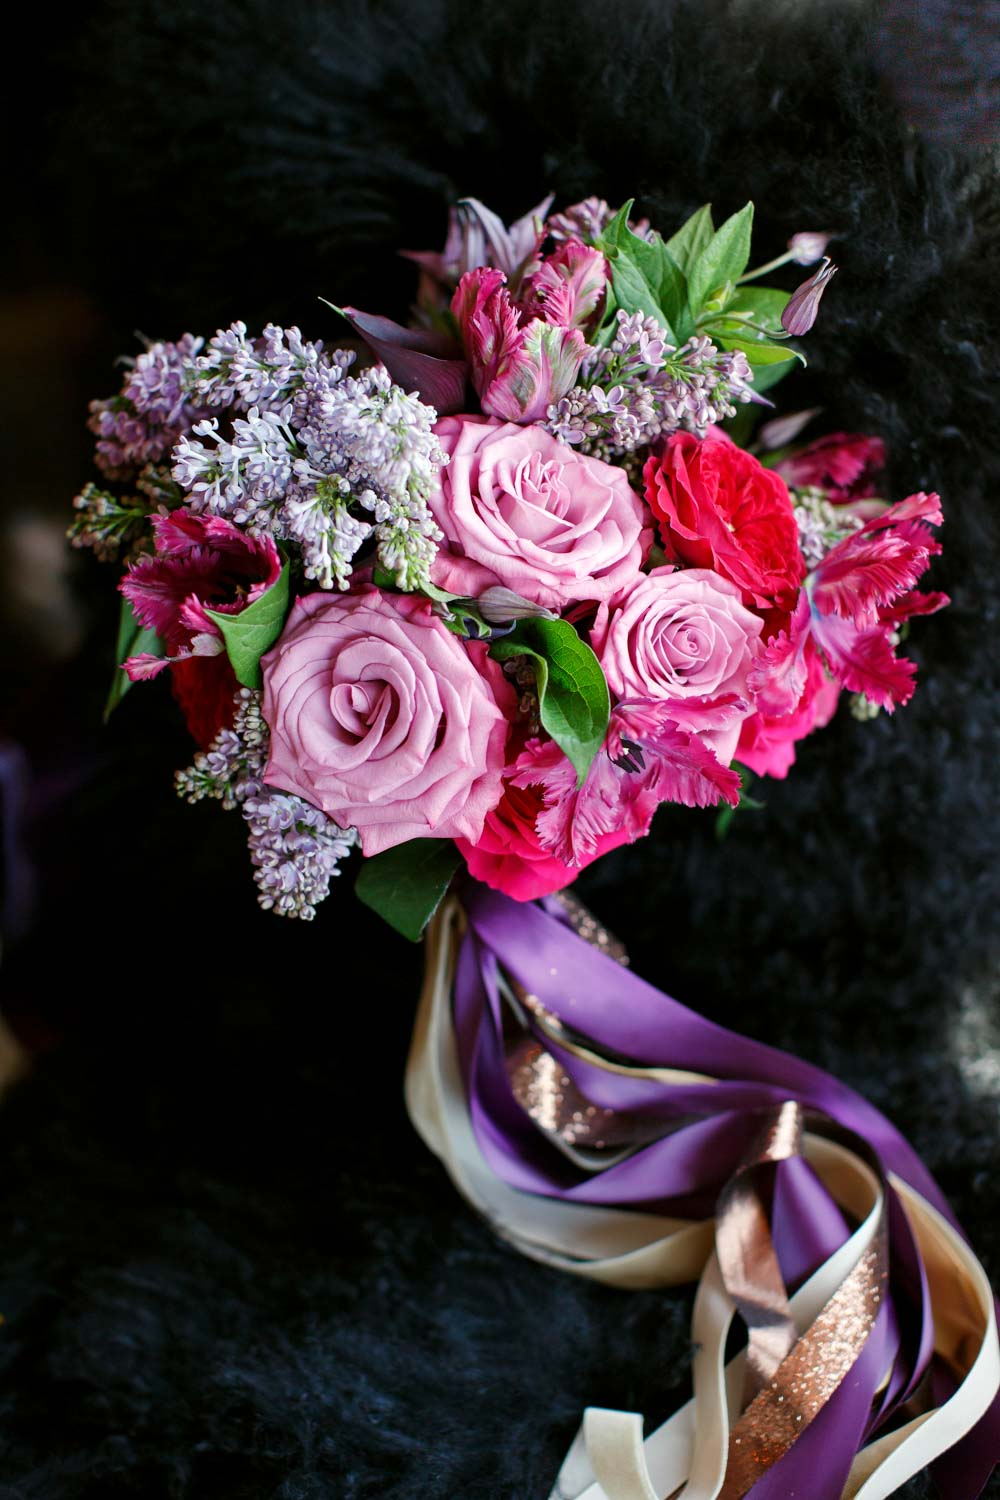 Bouquet Bridal Bouquet Colorful Weddings Floral Arrangements Wedding